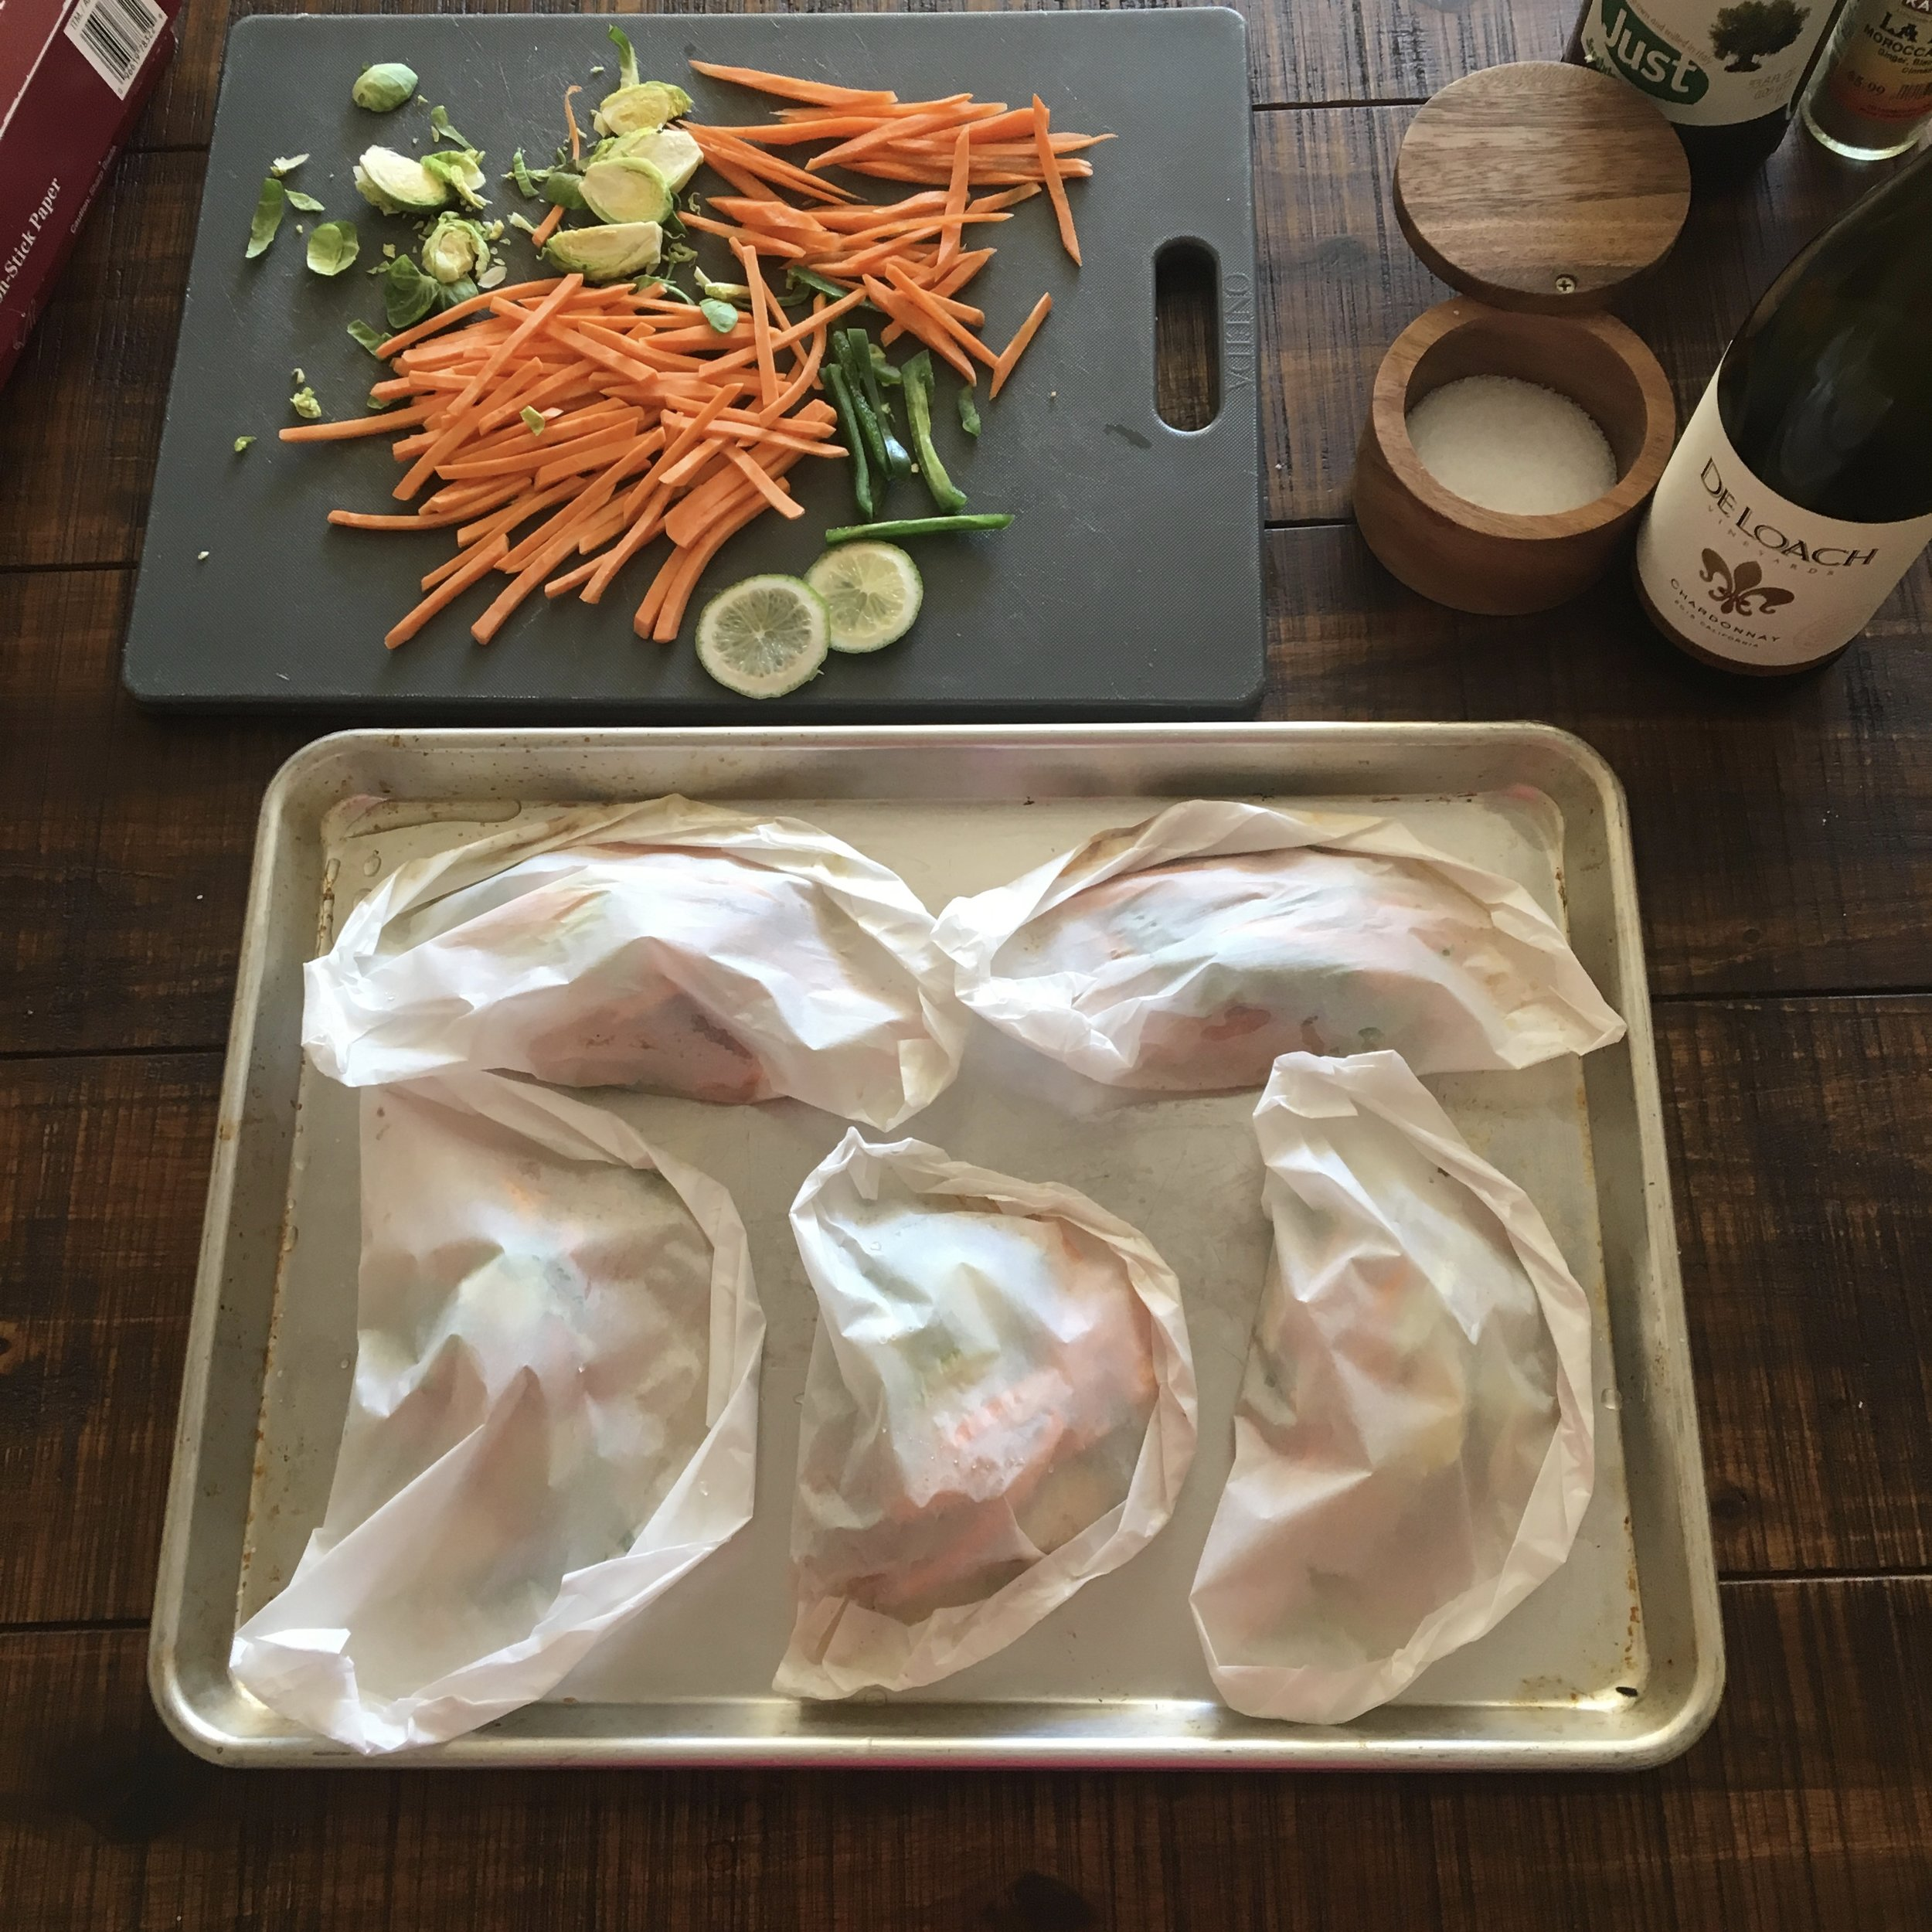 10. Arrange papillotes in a single layer on a baking sheet and bake for approximately 15 minutes, more or less for larger/denser or smaller/lighter pieces of fish.